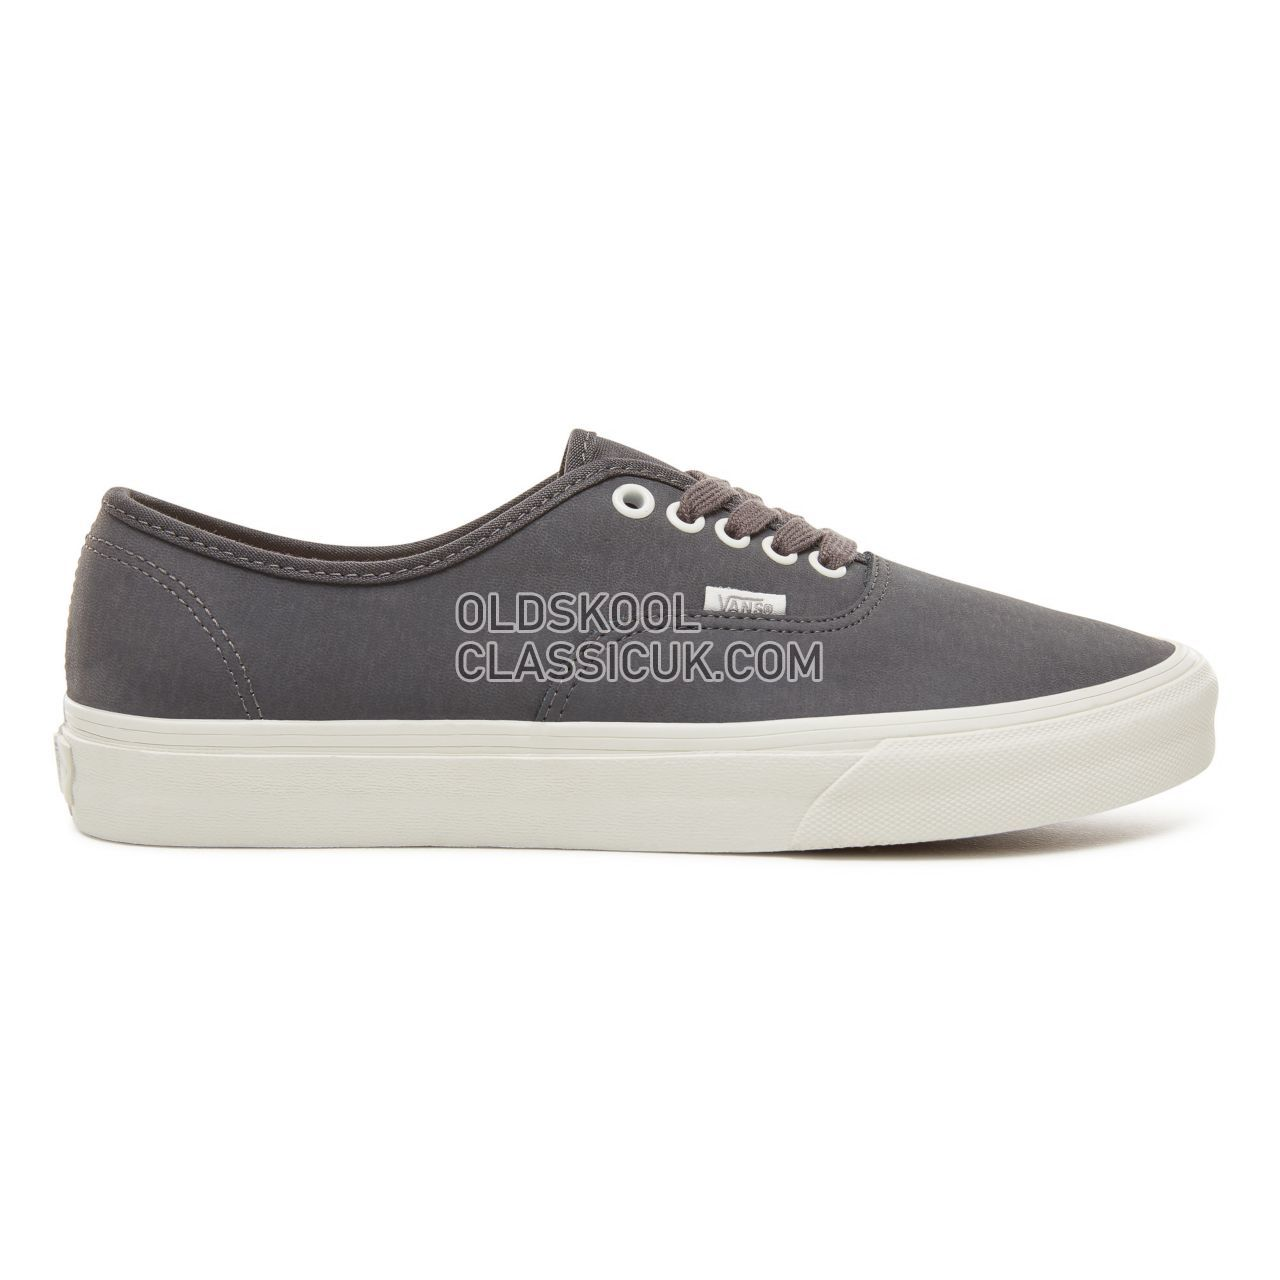 Vans Vansbuck Authentic Sneakers Mens (Vansbuck) Asphalt/Blanc De Blanc VA38EMU4A Shoes